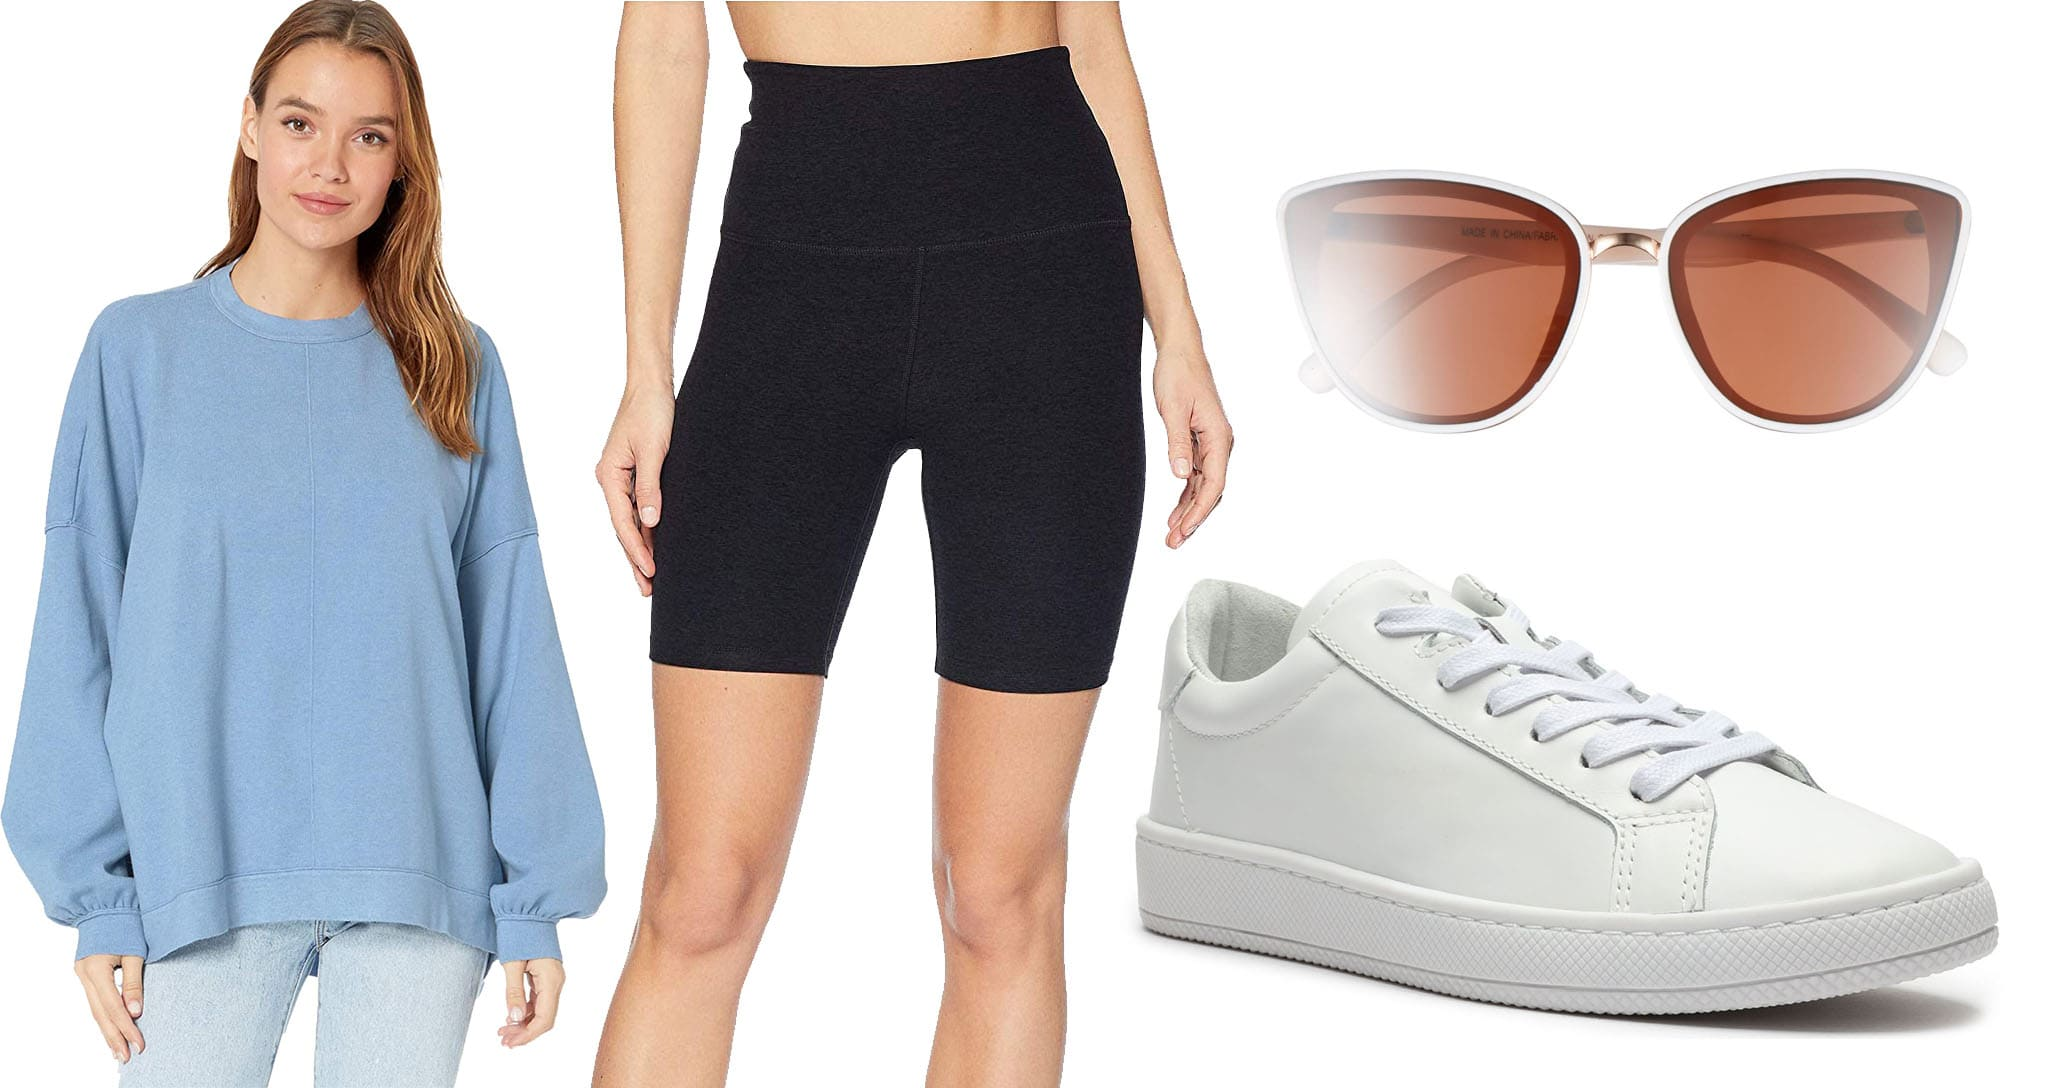 wear white sneakers with Free People sweater and Beyond Yoga biker shorts